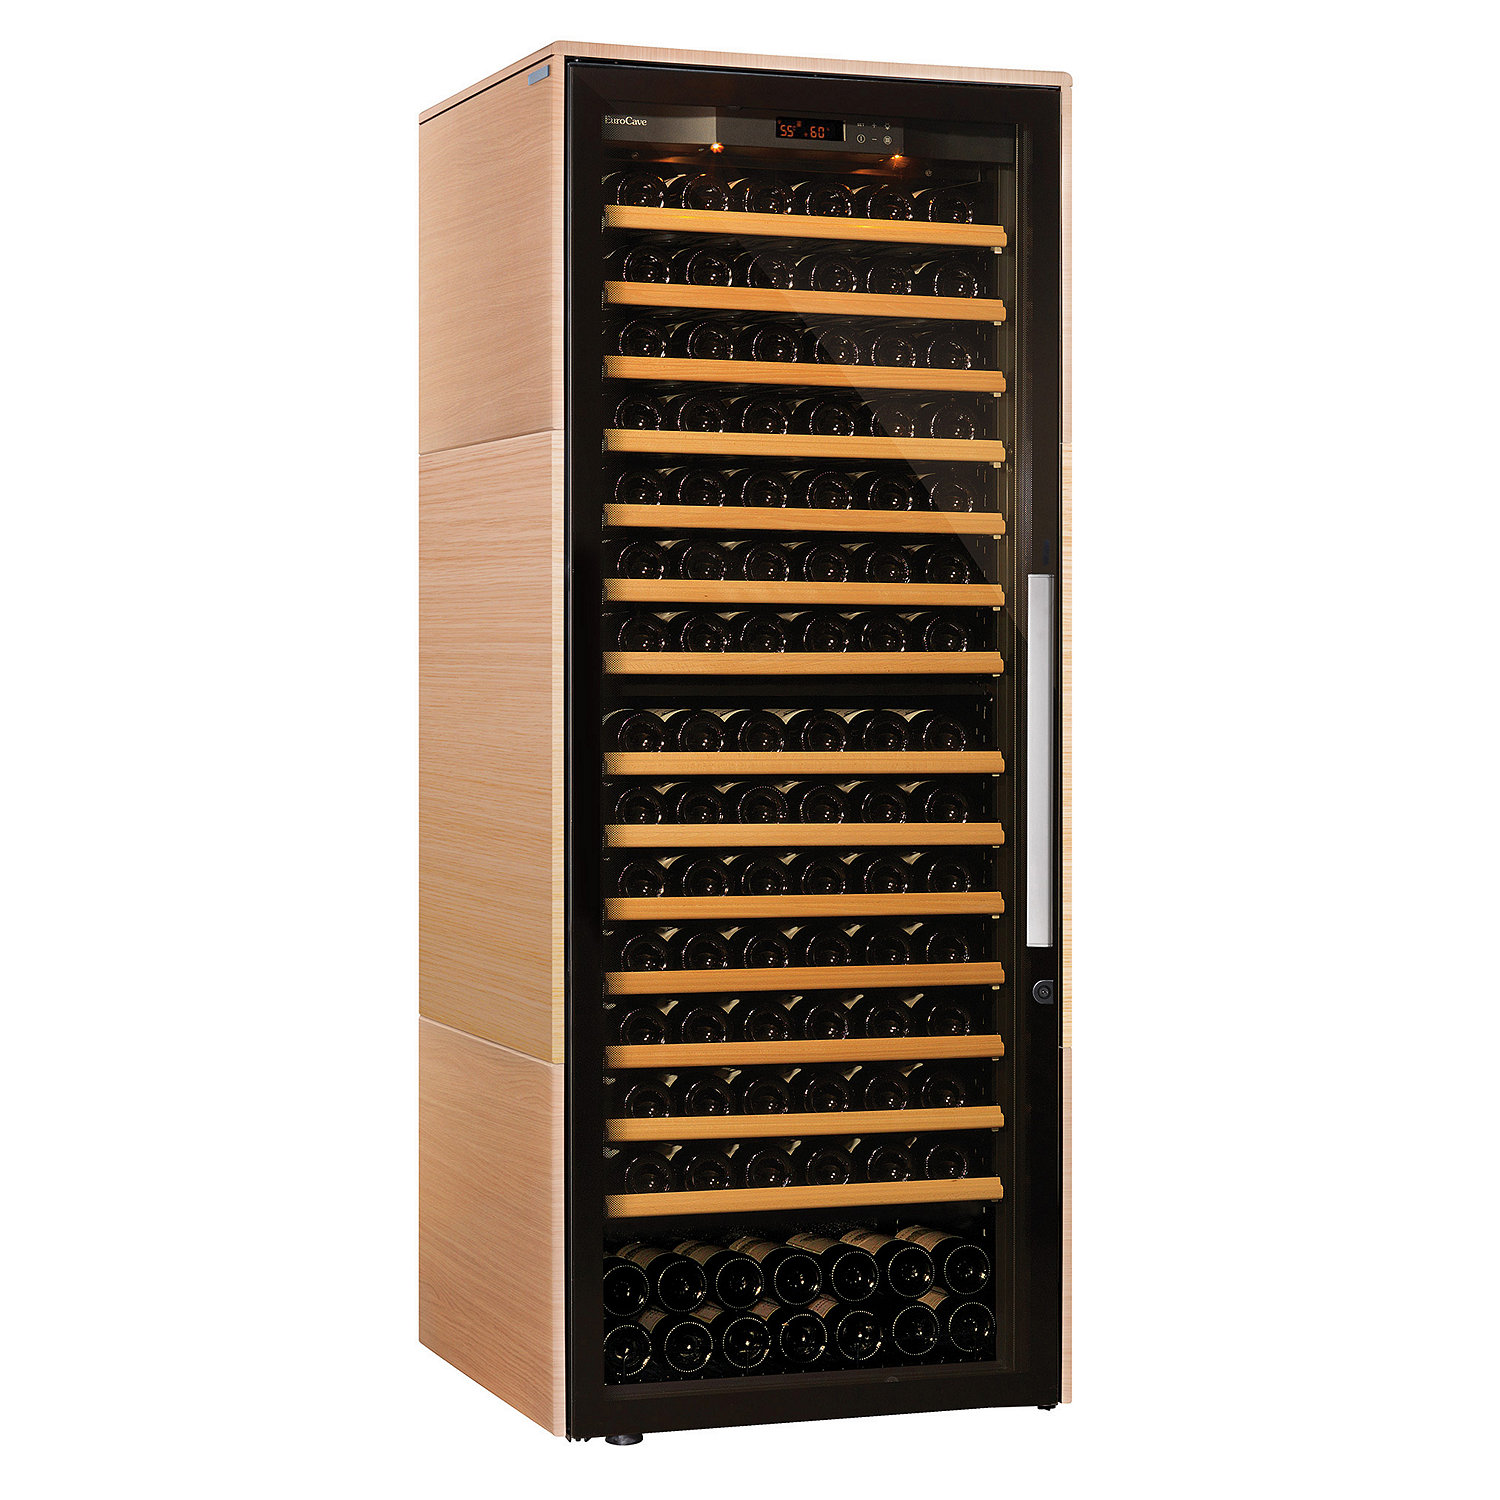 wine cellar furniture eurocave performance daaa 1 2 cor collection 283 wine cellar box version modern wine cellar furniture